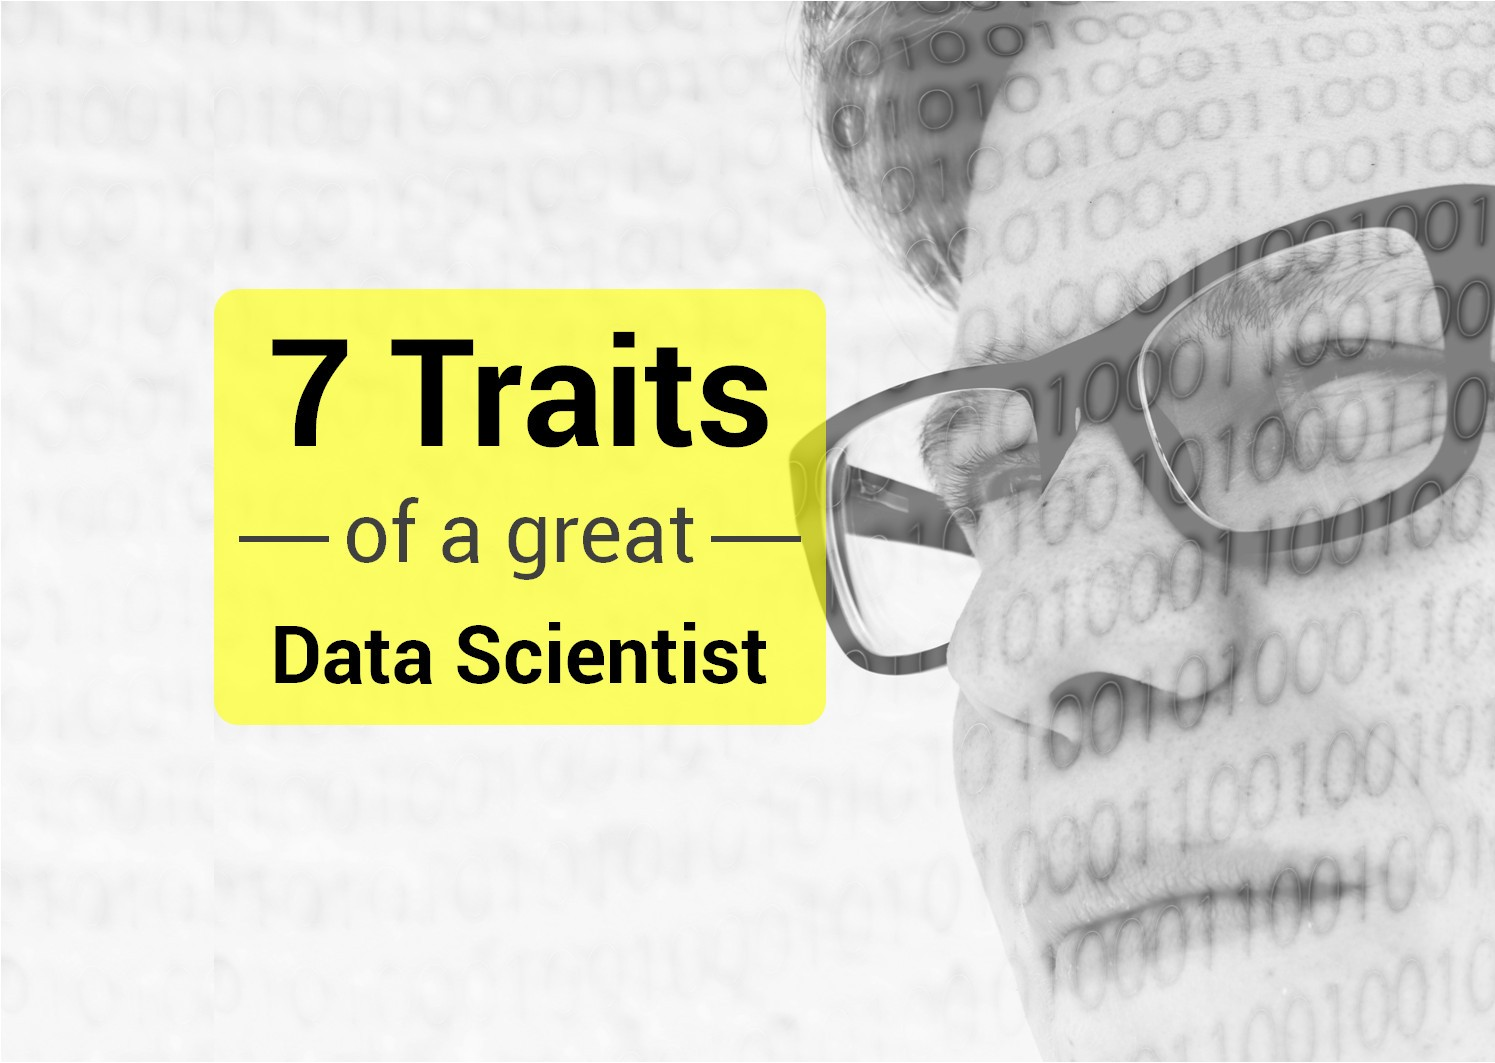 Traits of a Great Data Scientist - Image 1